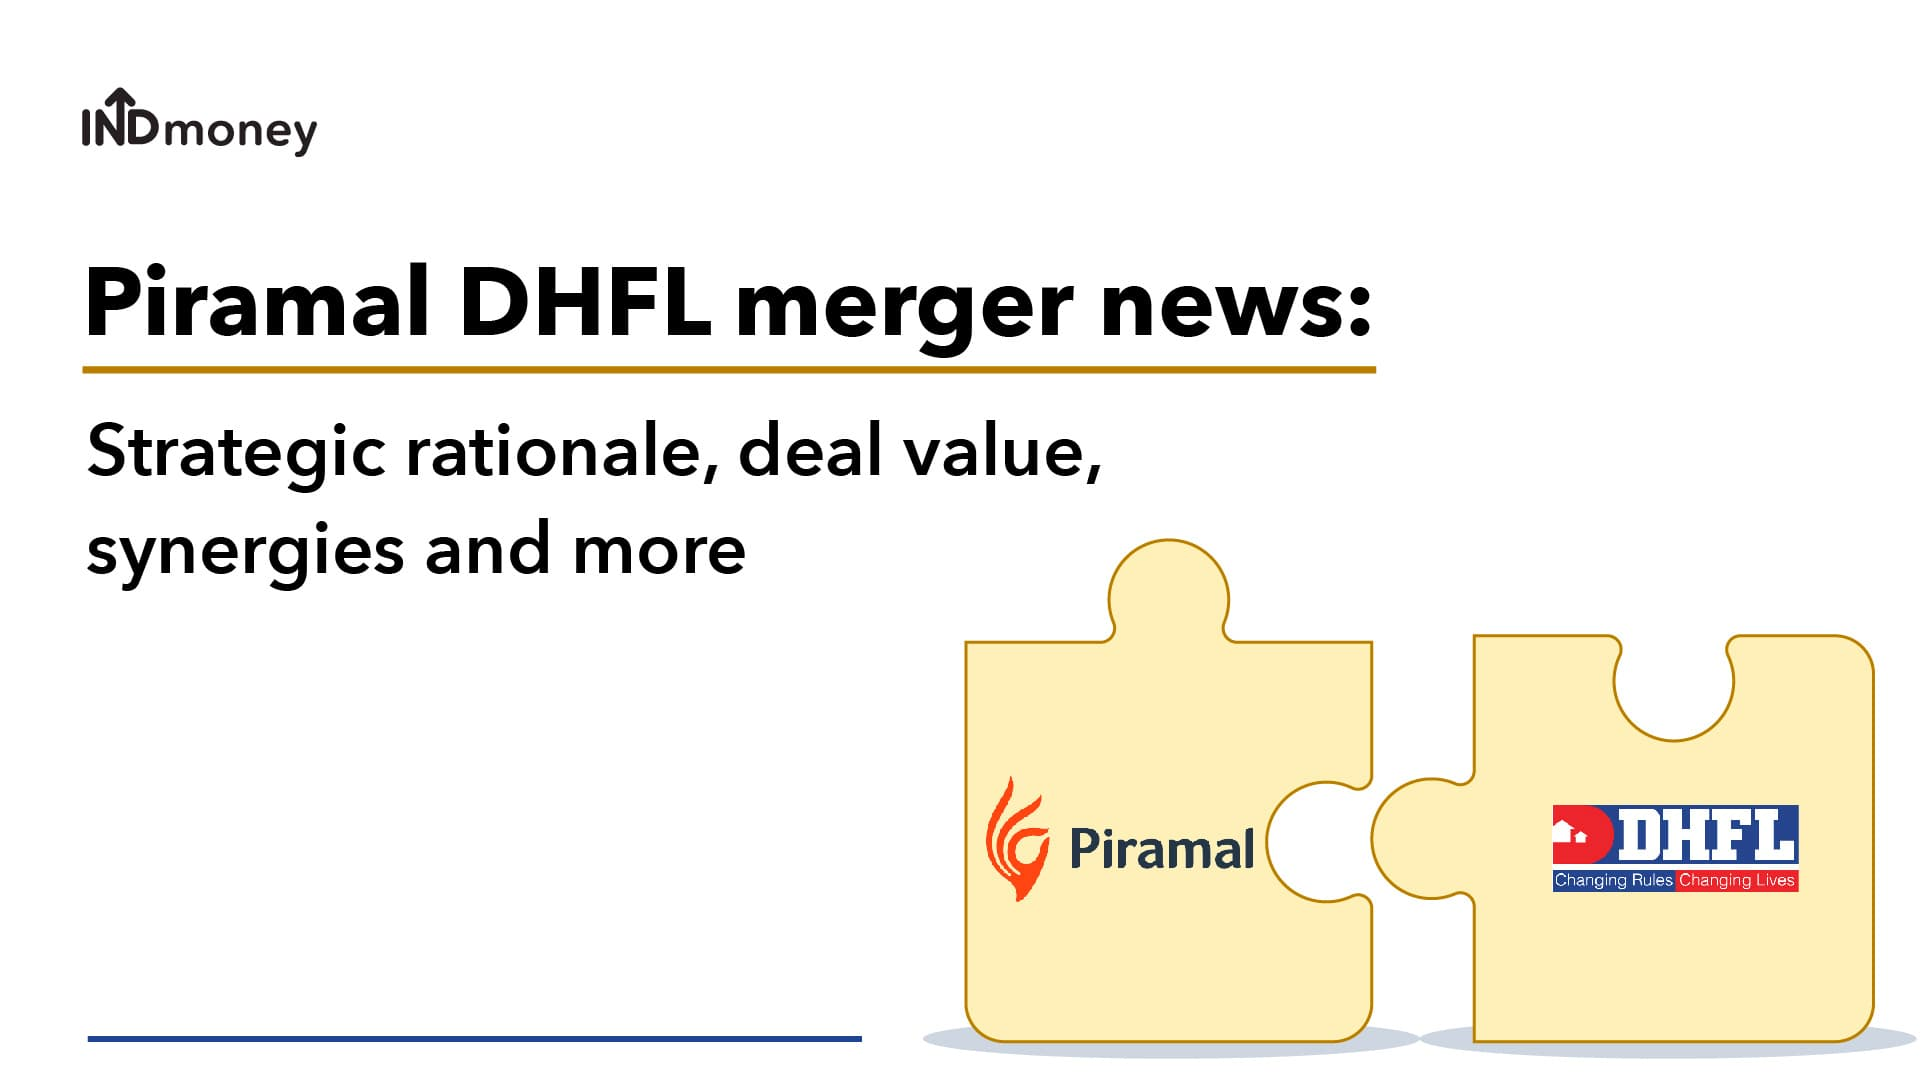 Piramal DHFL merger news: Strategic rationale, deal value, synergies and more